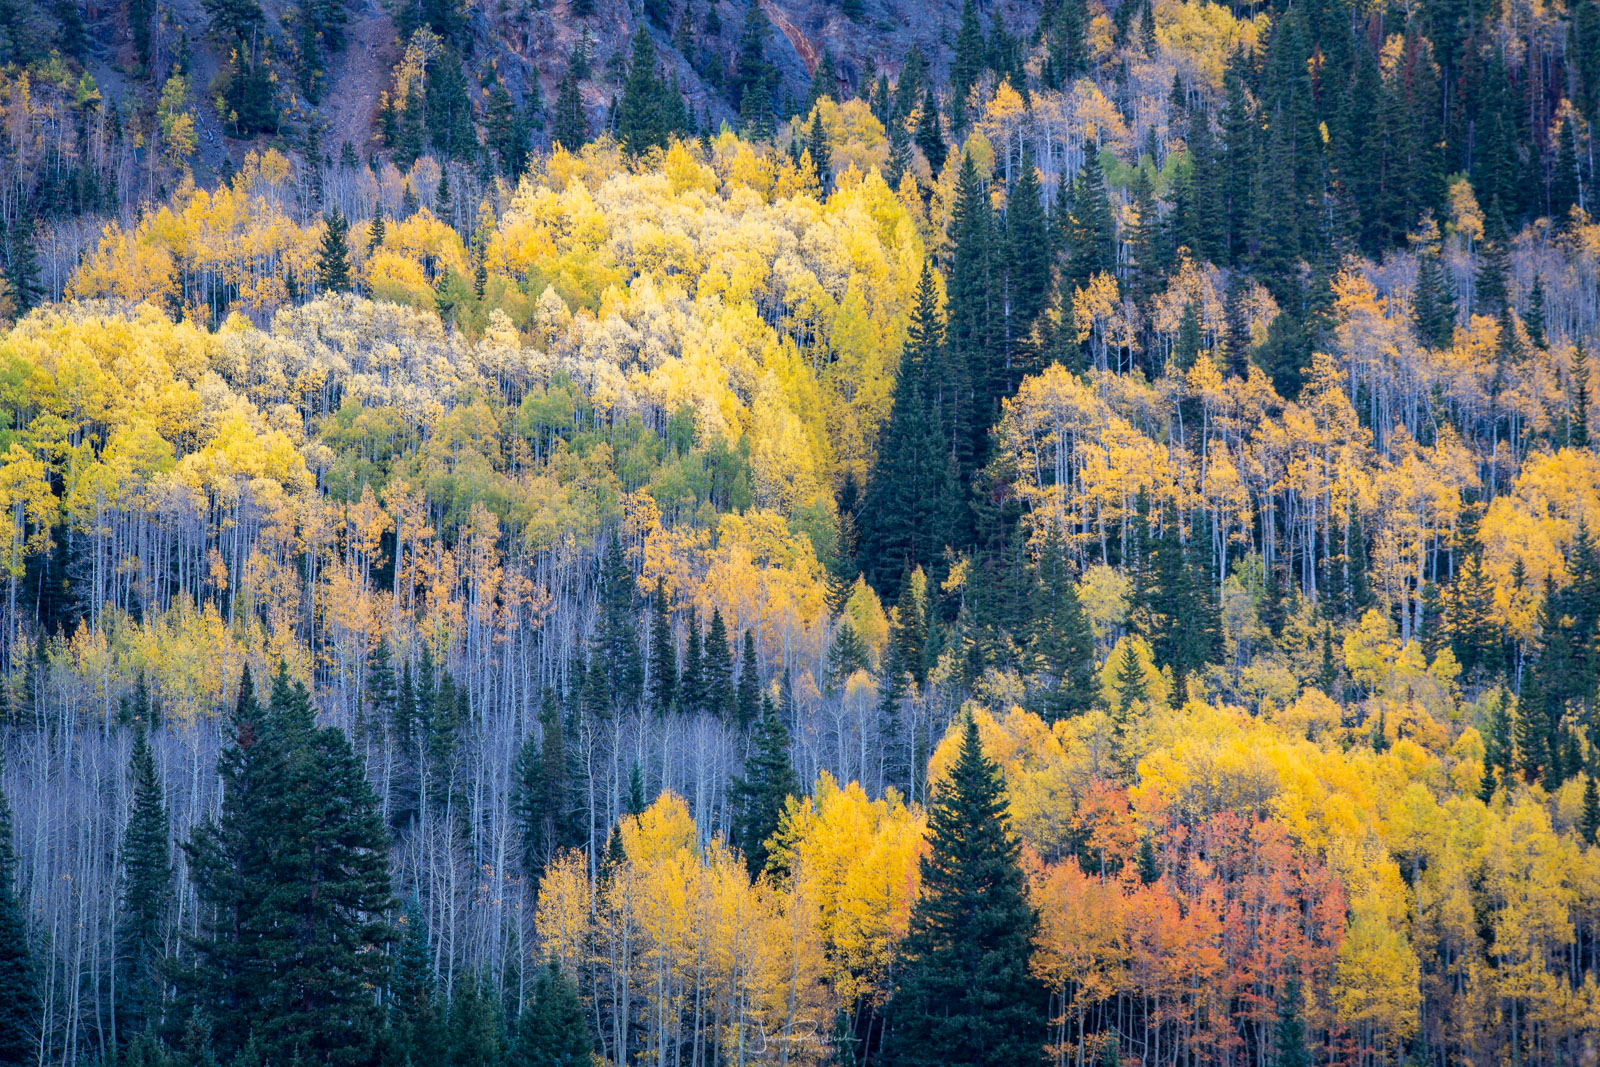 Autumn colors from the Million Dollar Highway.